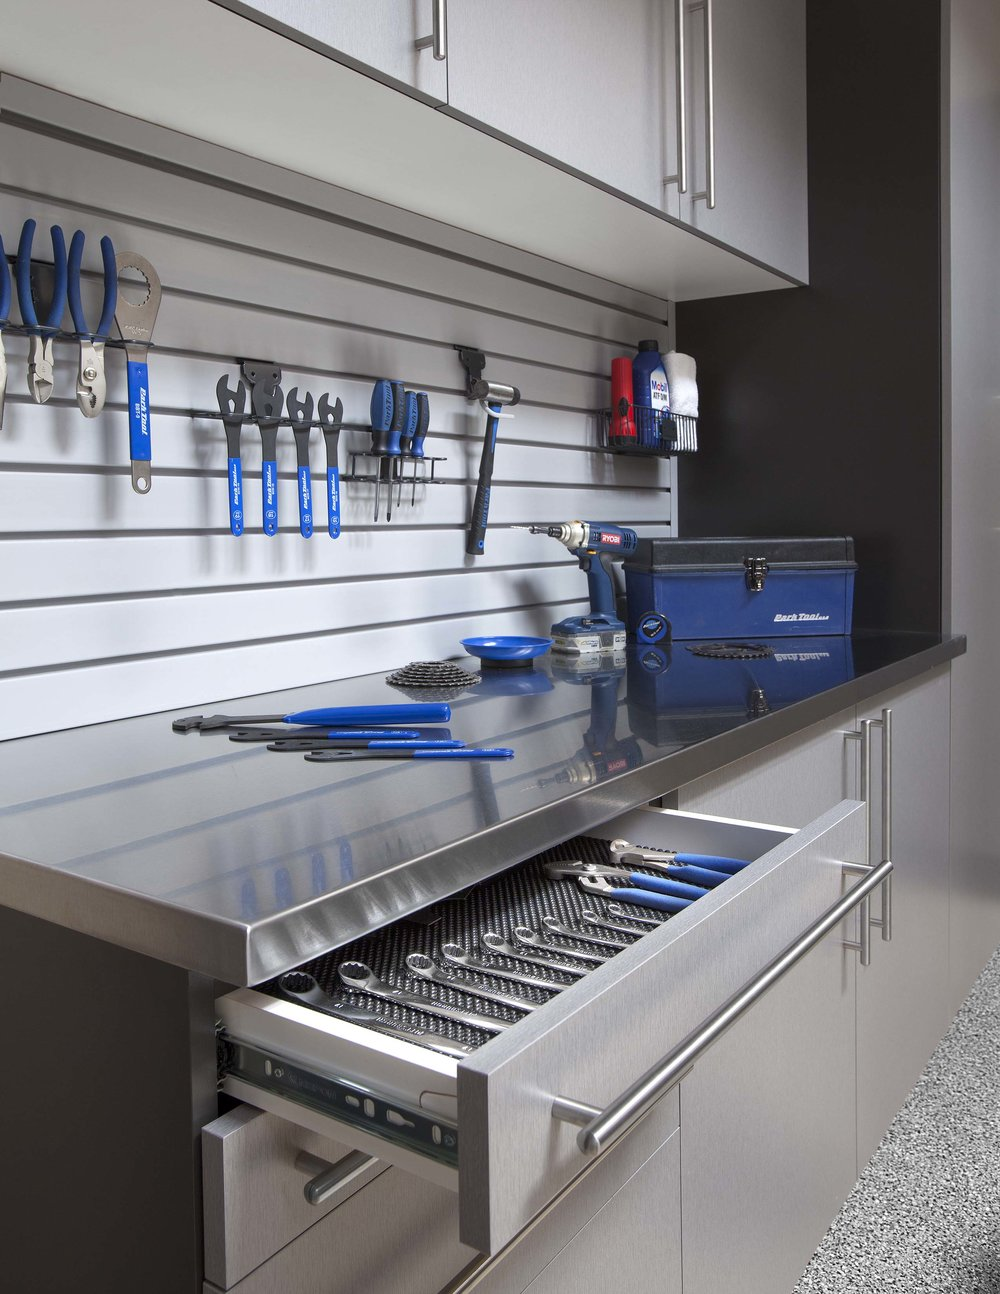 Protect valuable tools and equipment with custom tool storage.  Call Closets of Tulsa  now for a FREE 3-D garage design:  918.609.0214 . Pictured: Dove grey garage cabinets with custom drawer pulls, stainless steel countertop, slatwall storage and custom tool chest.